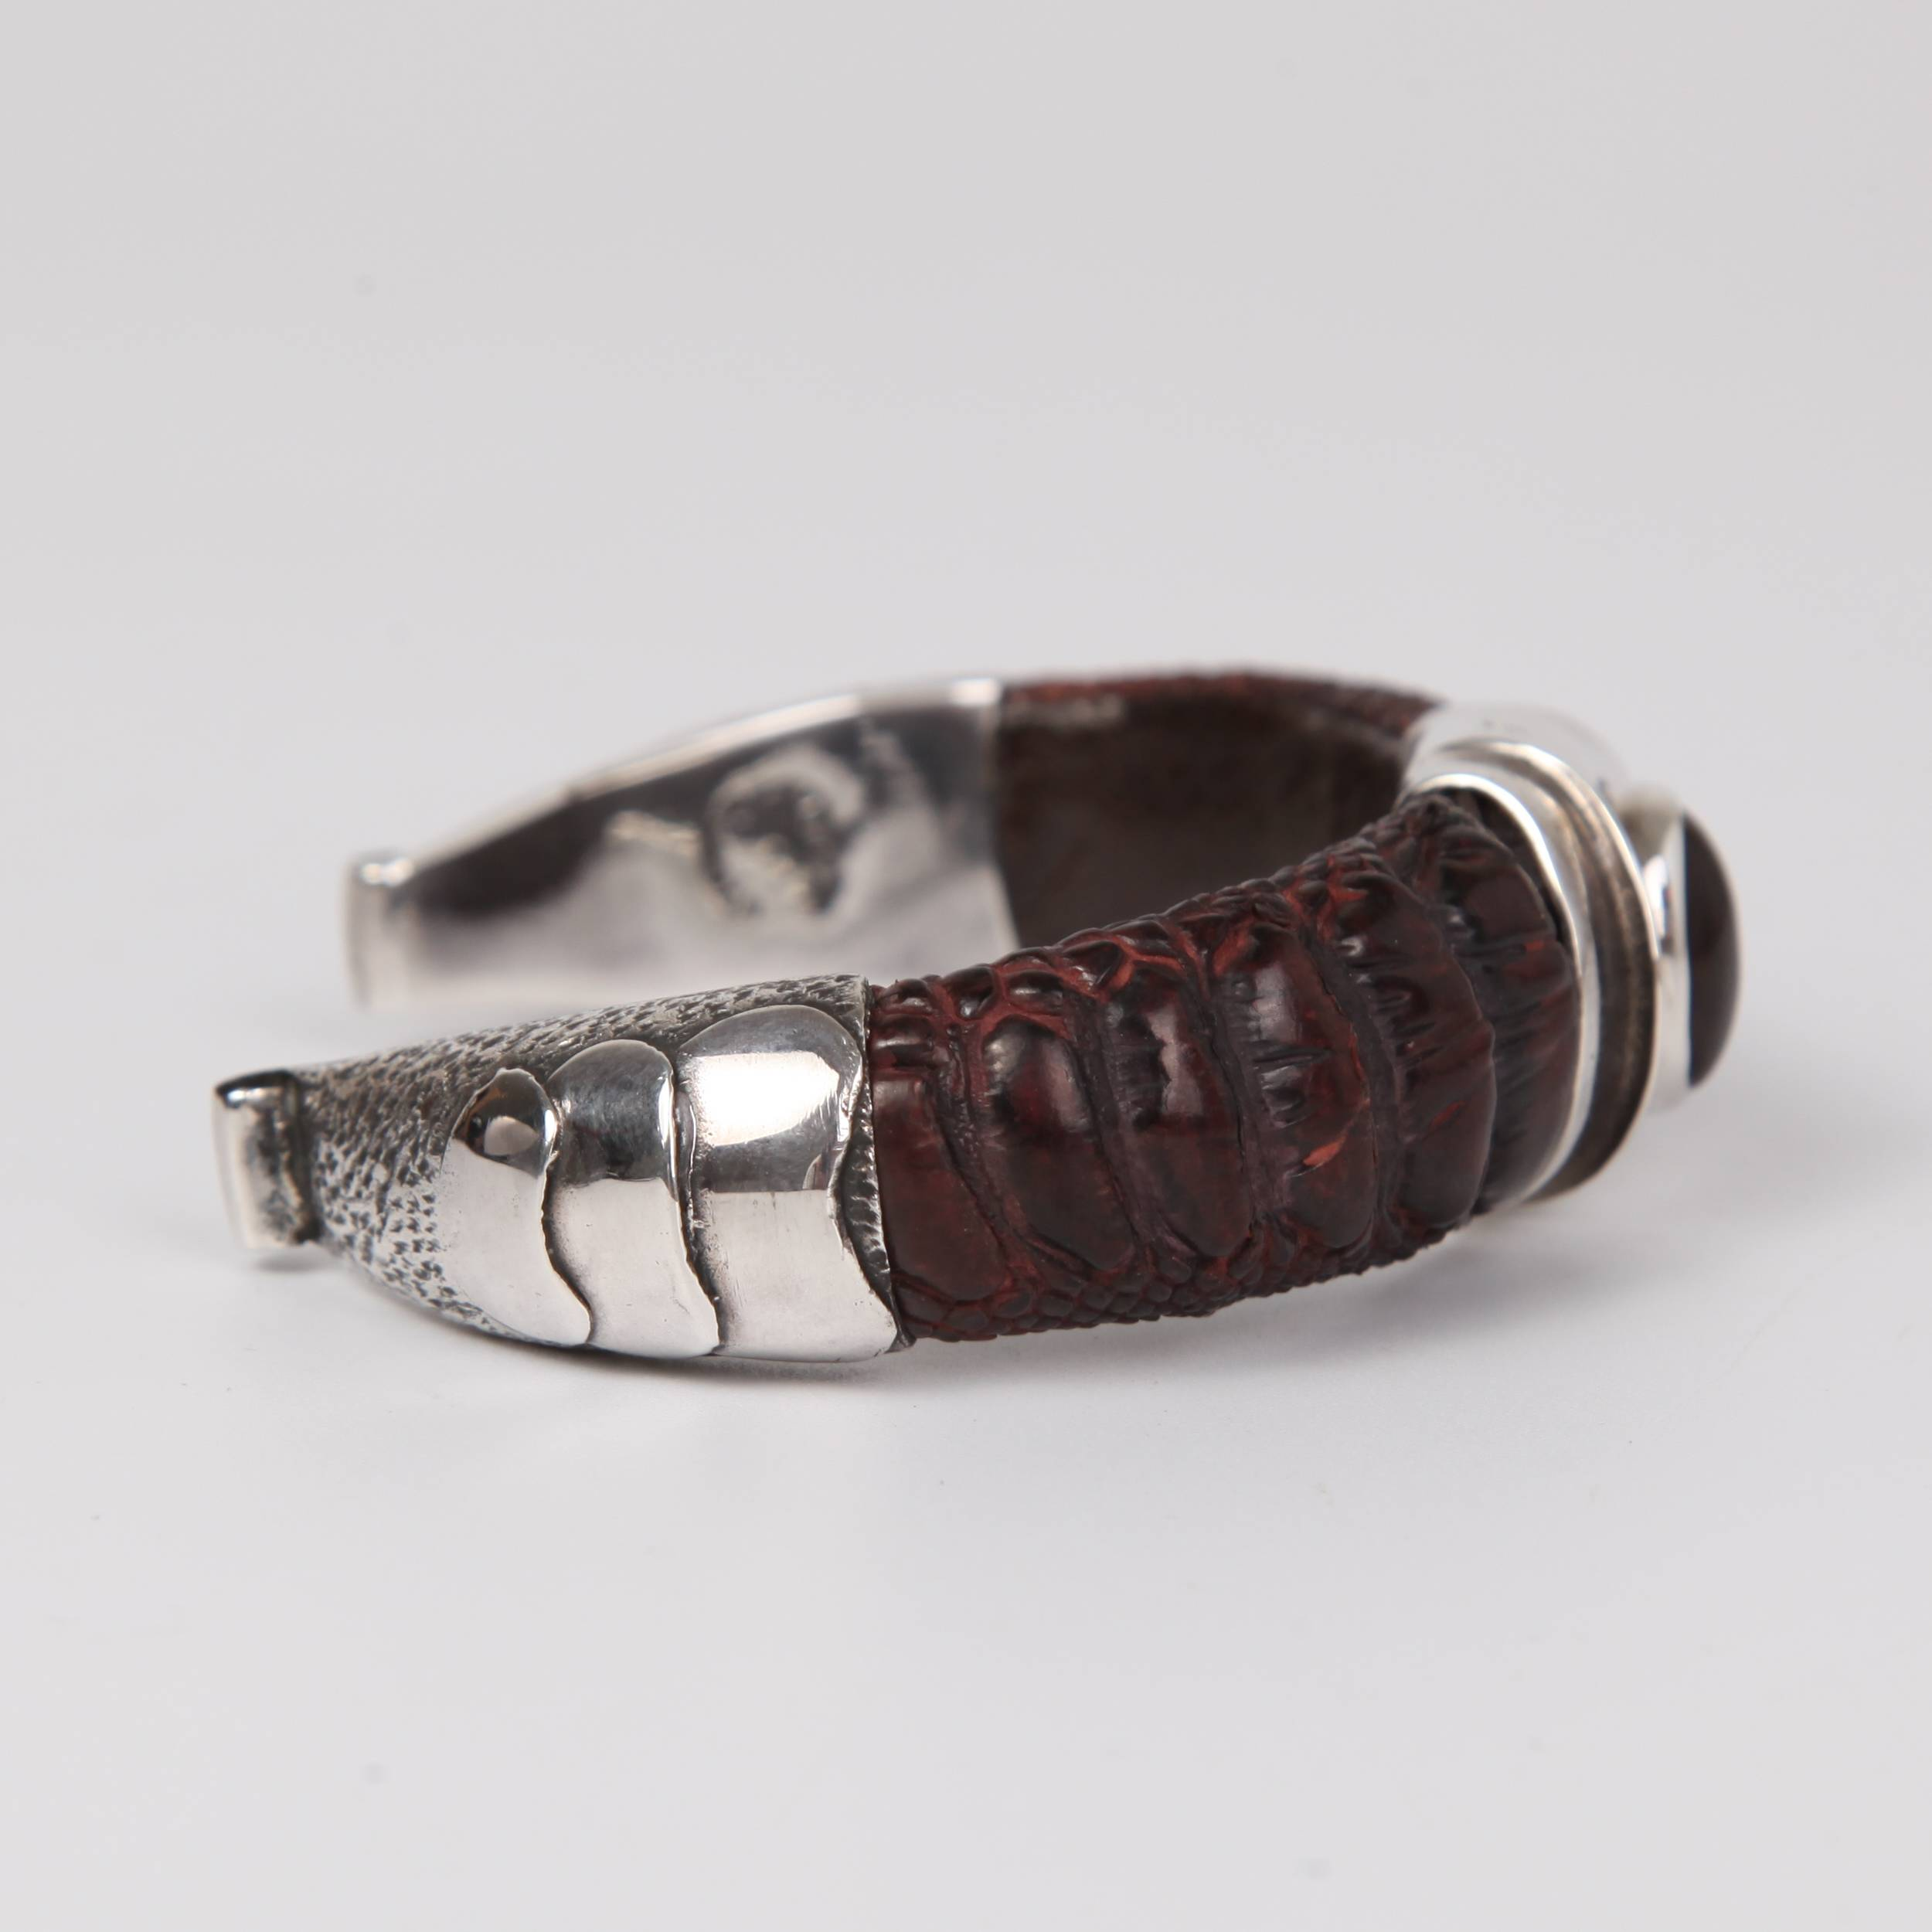 Leather (Ostrich toe skin) Bracelet with Sterling Silver and Fire Agate